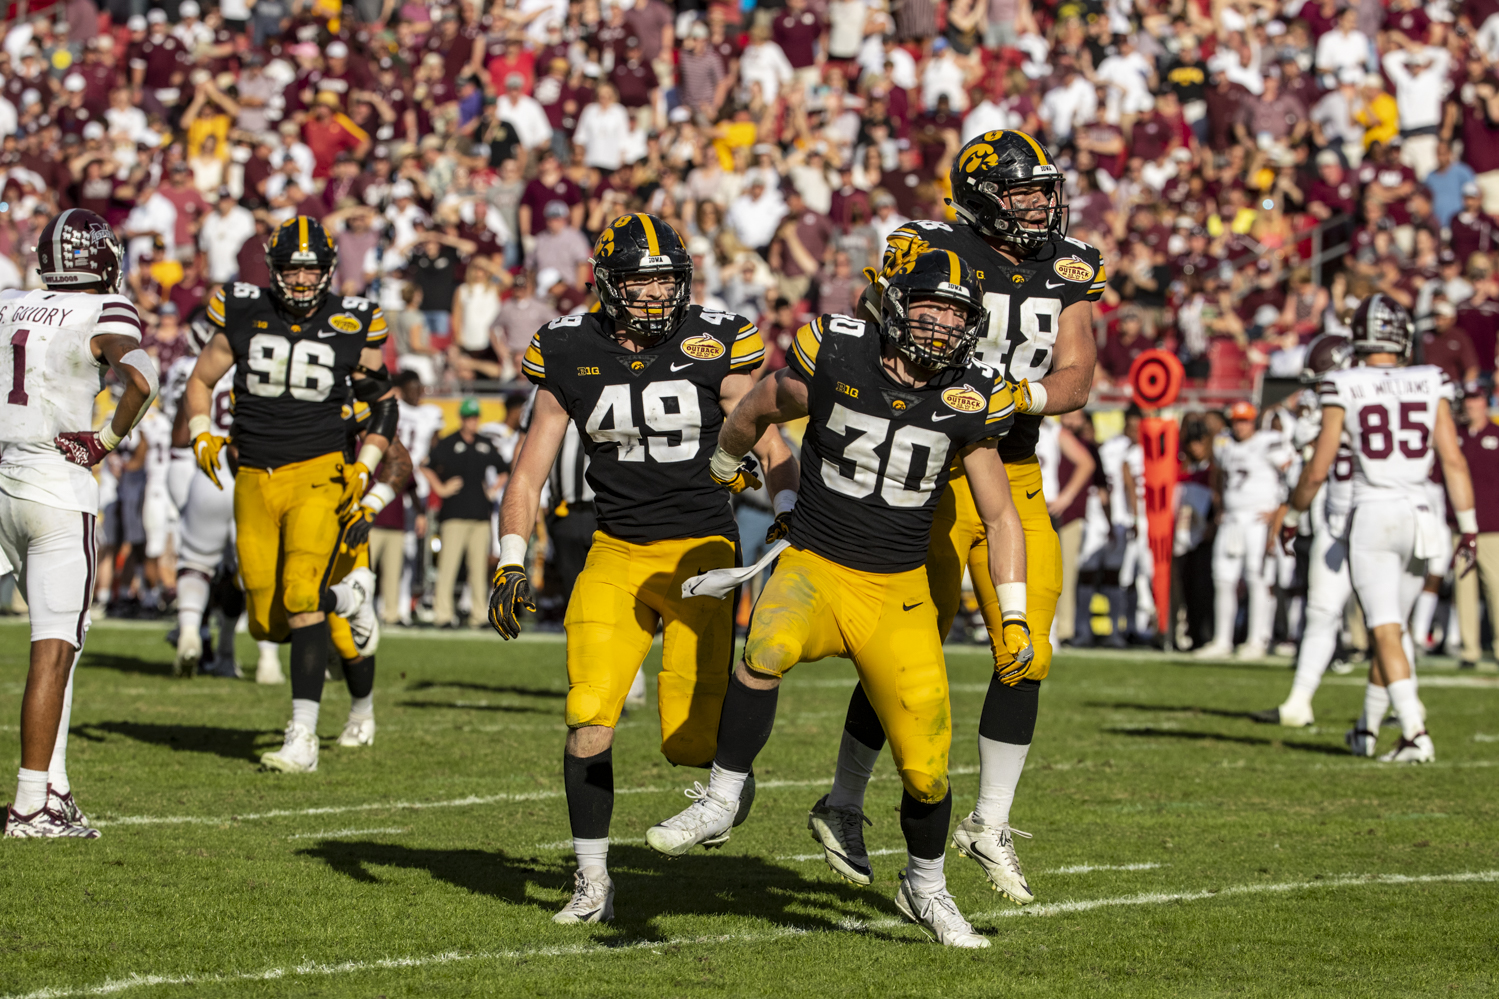 Iowa safety Jake Gervase celebrates after breaking up a pass to seal Iowa's victory during the Outback Bowl game between Iowa and Mississippi State at Raymond James Stadium in Tampa, Florida on Tuesday, January 1, 2019. The Hawkeyes defeated the Bulldogs 27-22.